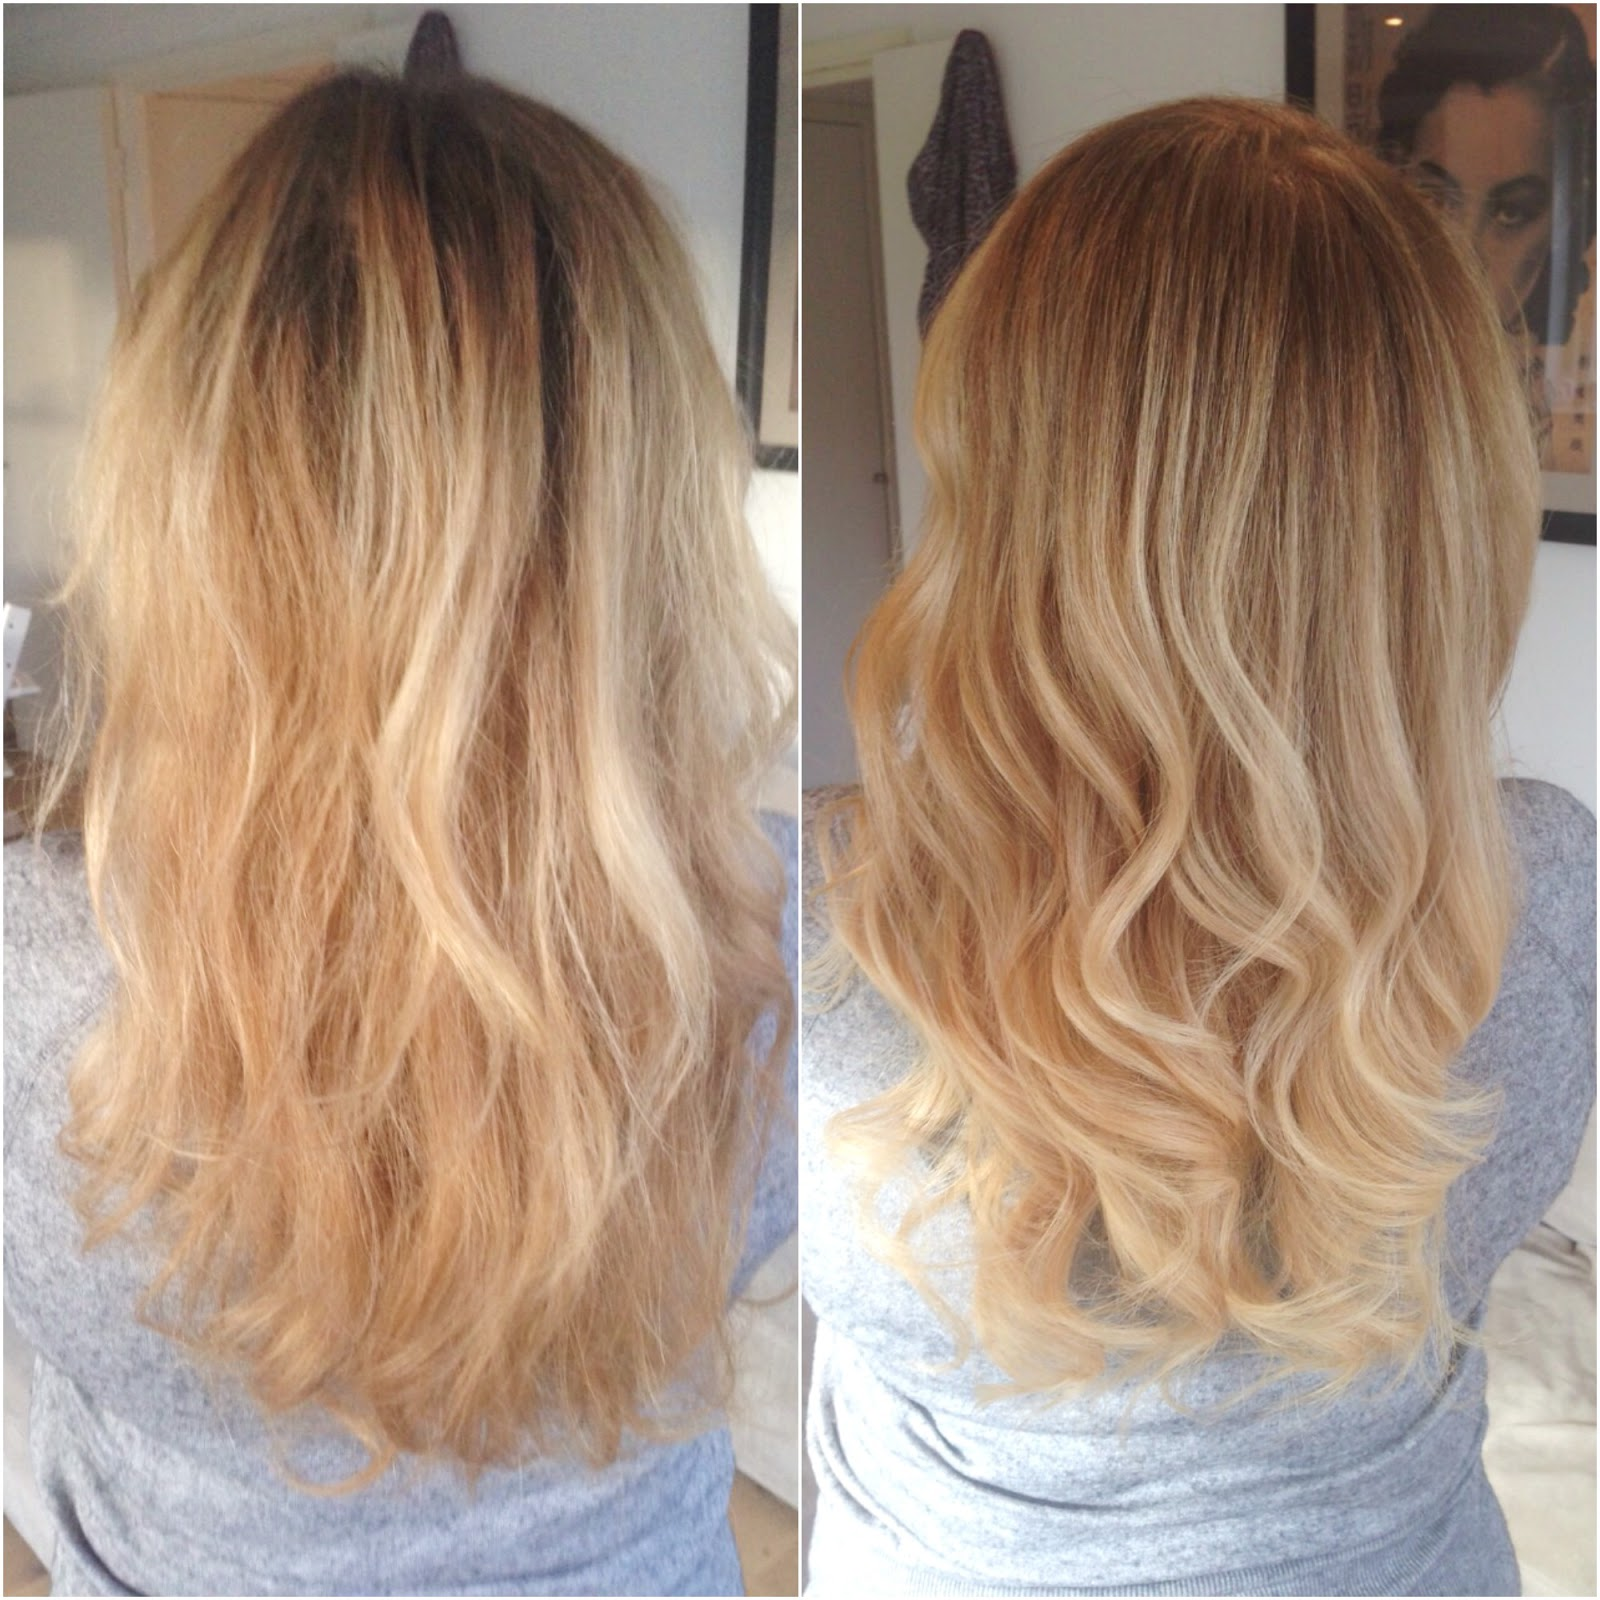 Jen images how much does balayage highlights cost with how much does